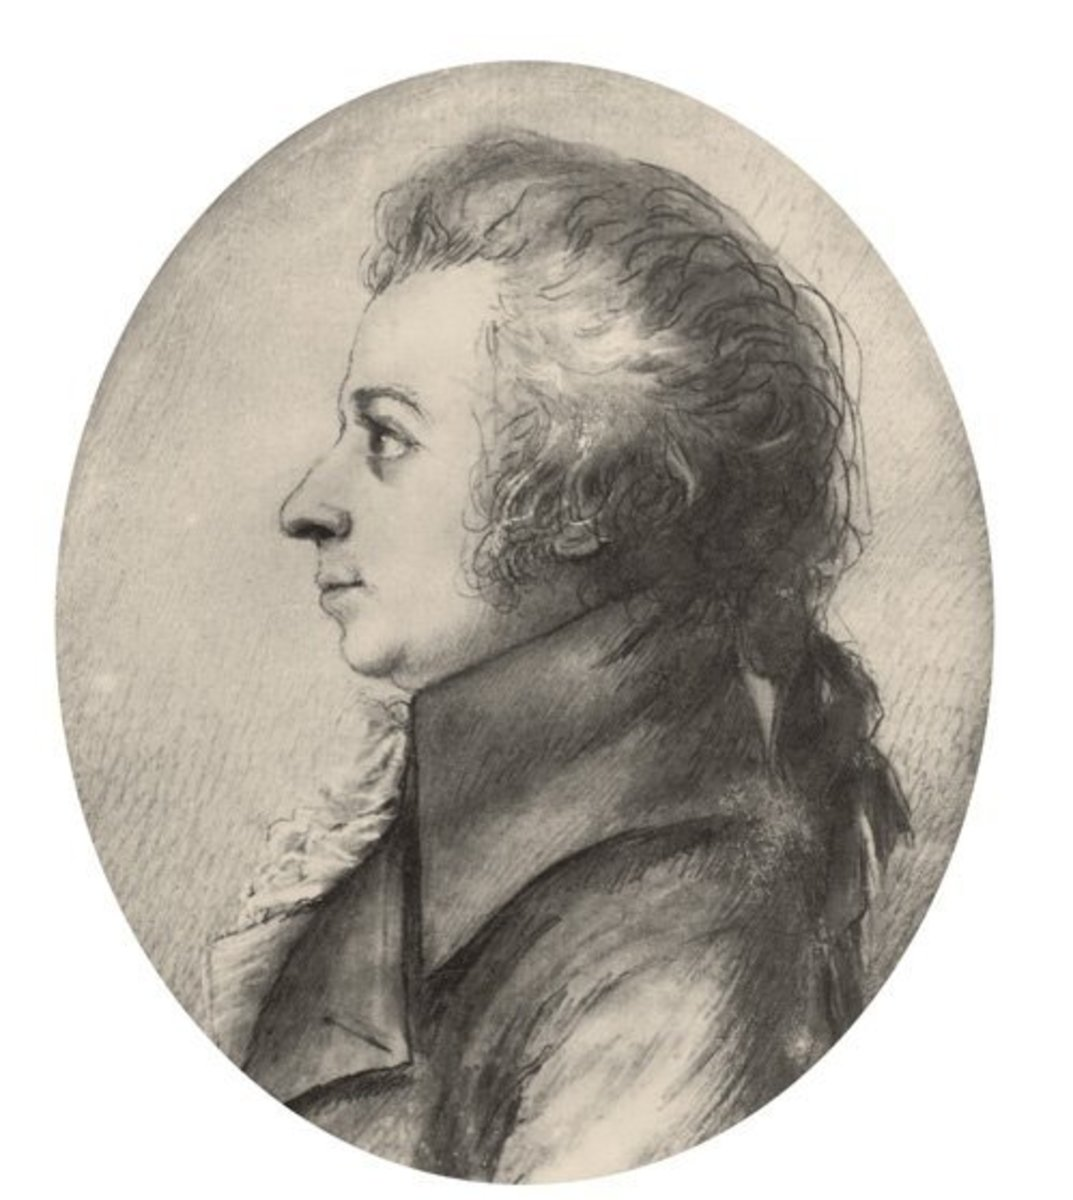 A drawing of Wolfgang Amadeus Mozart